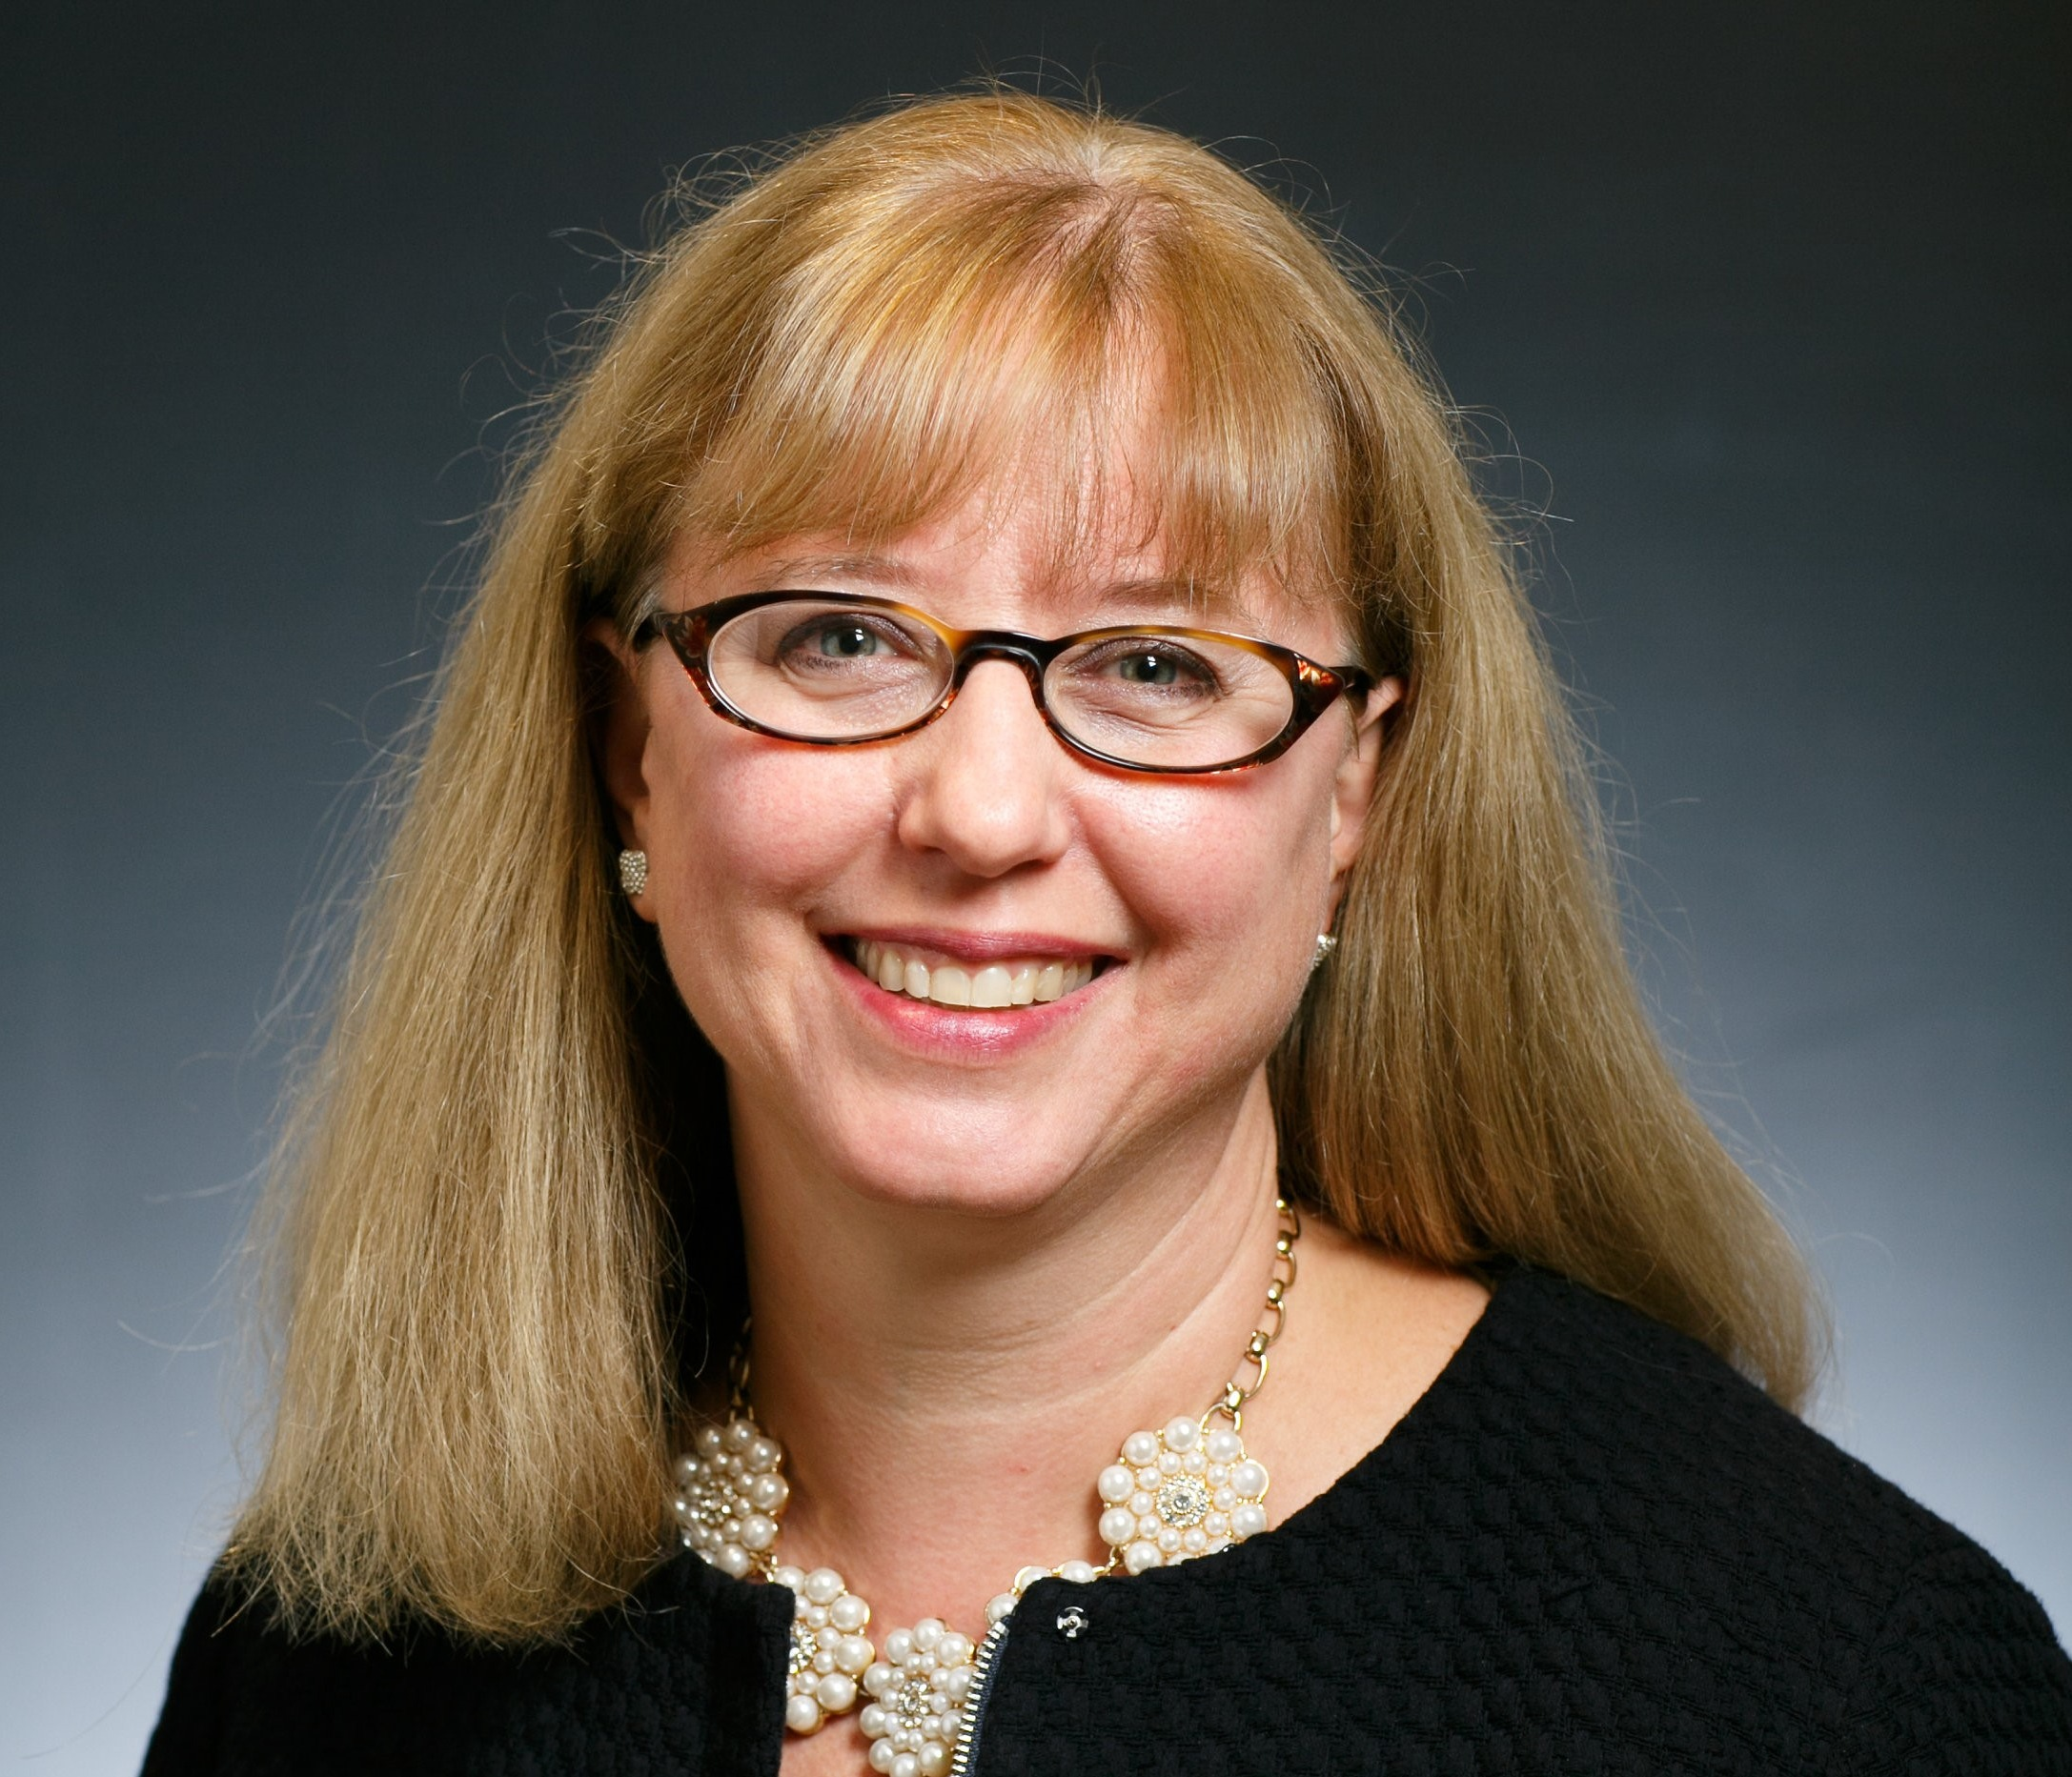 Krista Showers Appointed to Board of The Central Pennsylvania Chapter of ISCEBS